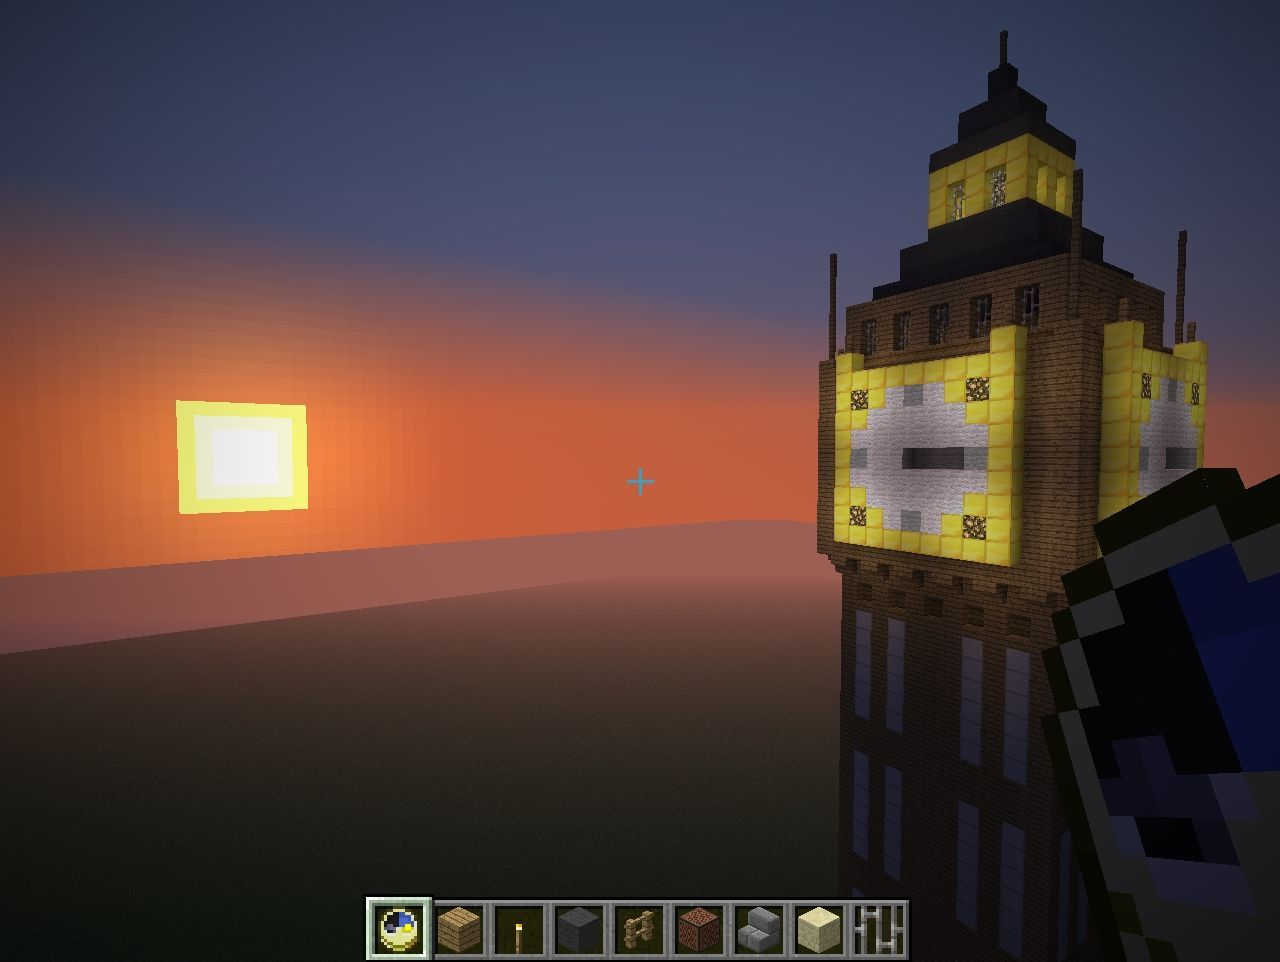 Big Ben Clock Tower With Working Clock Minecraft Project. Big Ben Clock Tower With Working Clock Minecraft Project